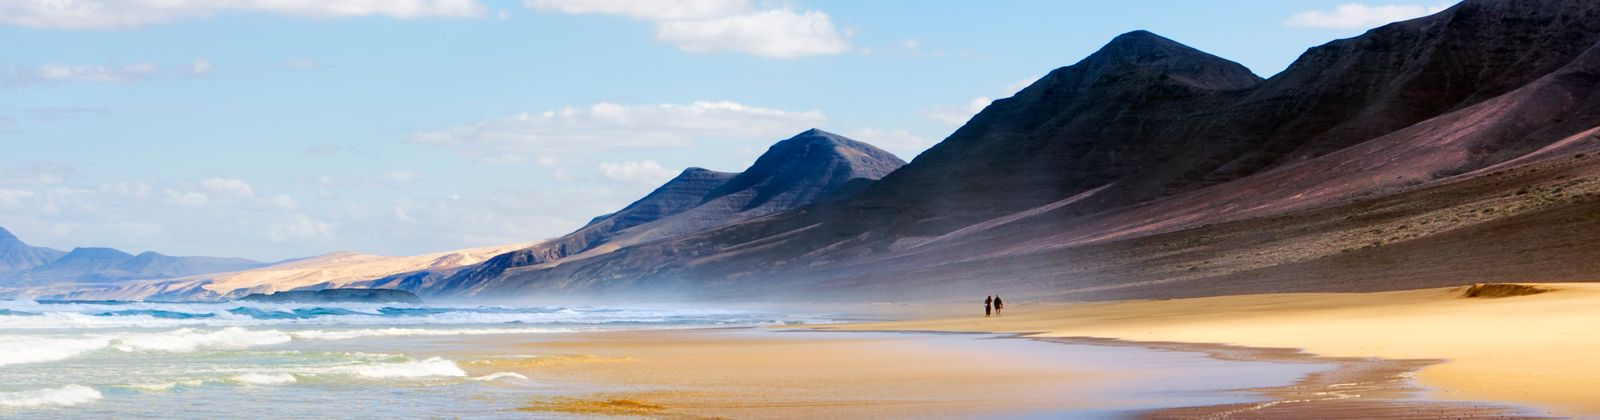 The Best Secluded Beaches In World 2017